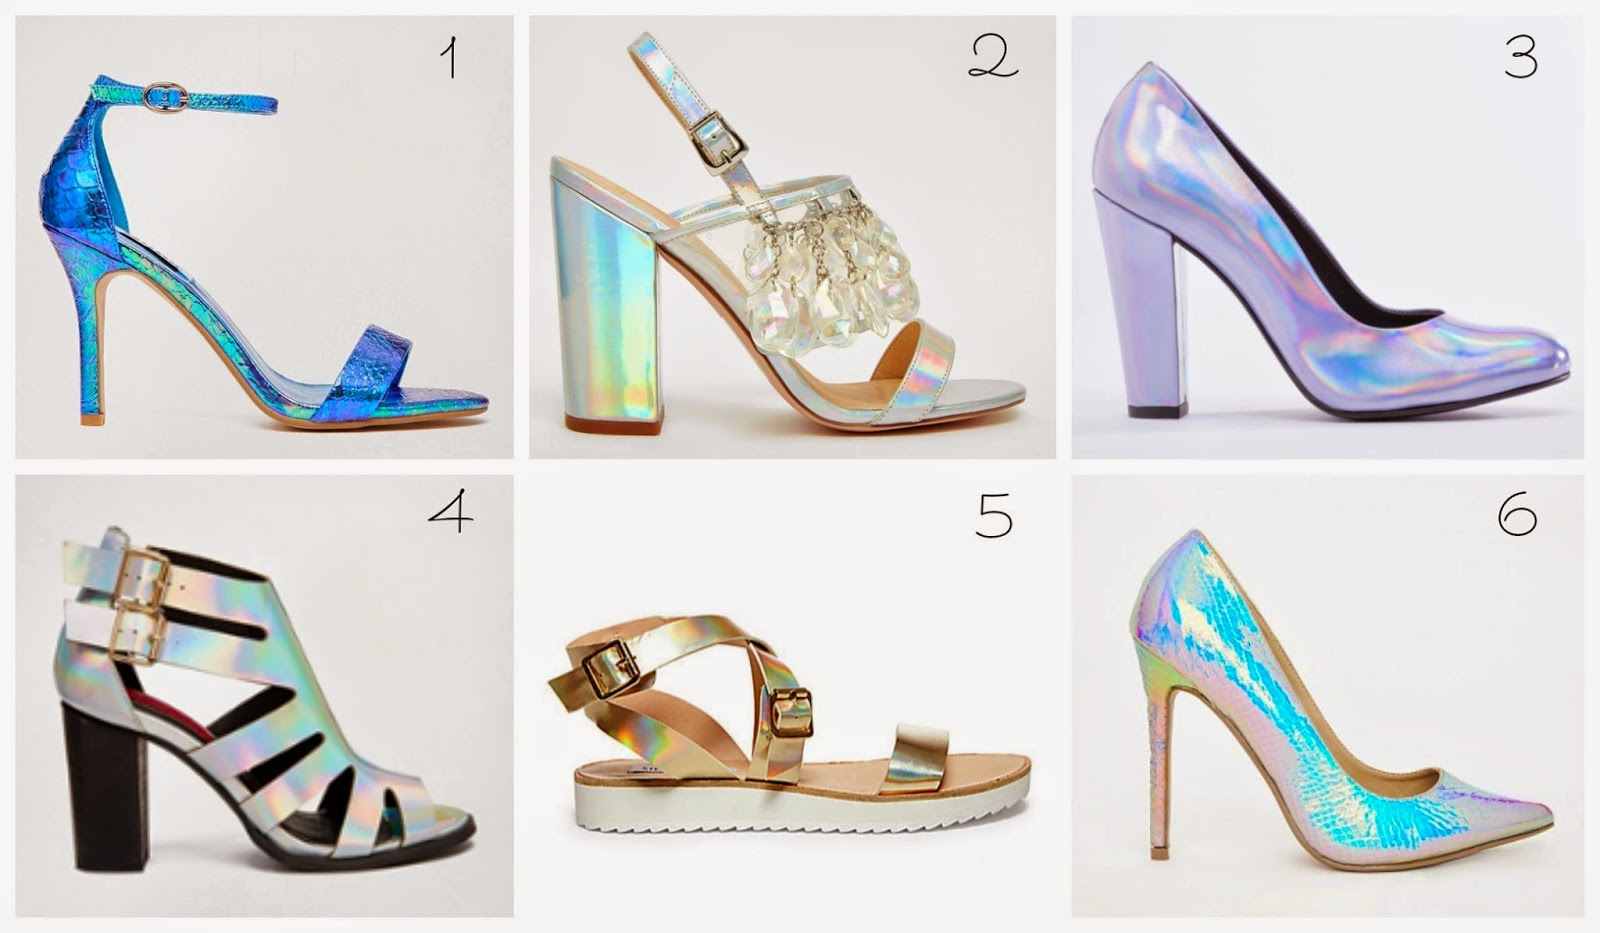 cc43443e80eb6 1) Dune Hydro Blue & Gold Metallic Barely There Heeled Sandals $125 asos.com